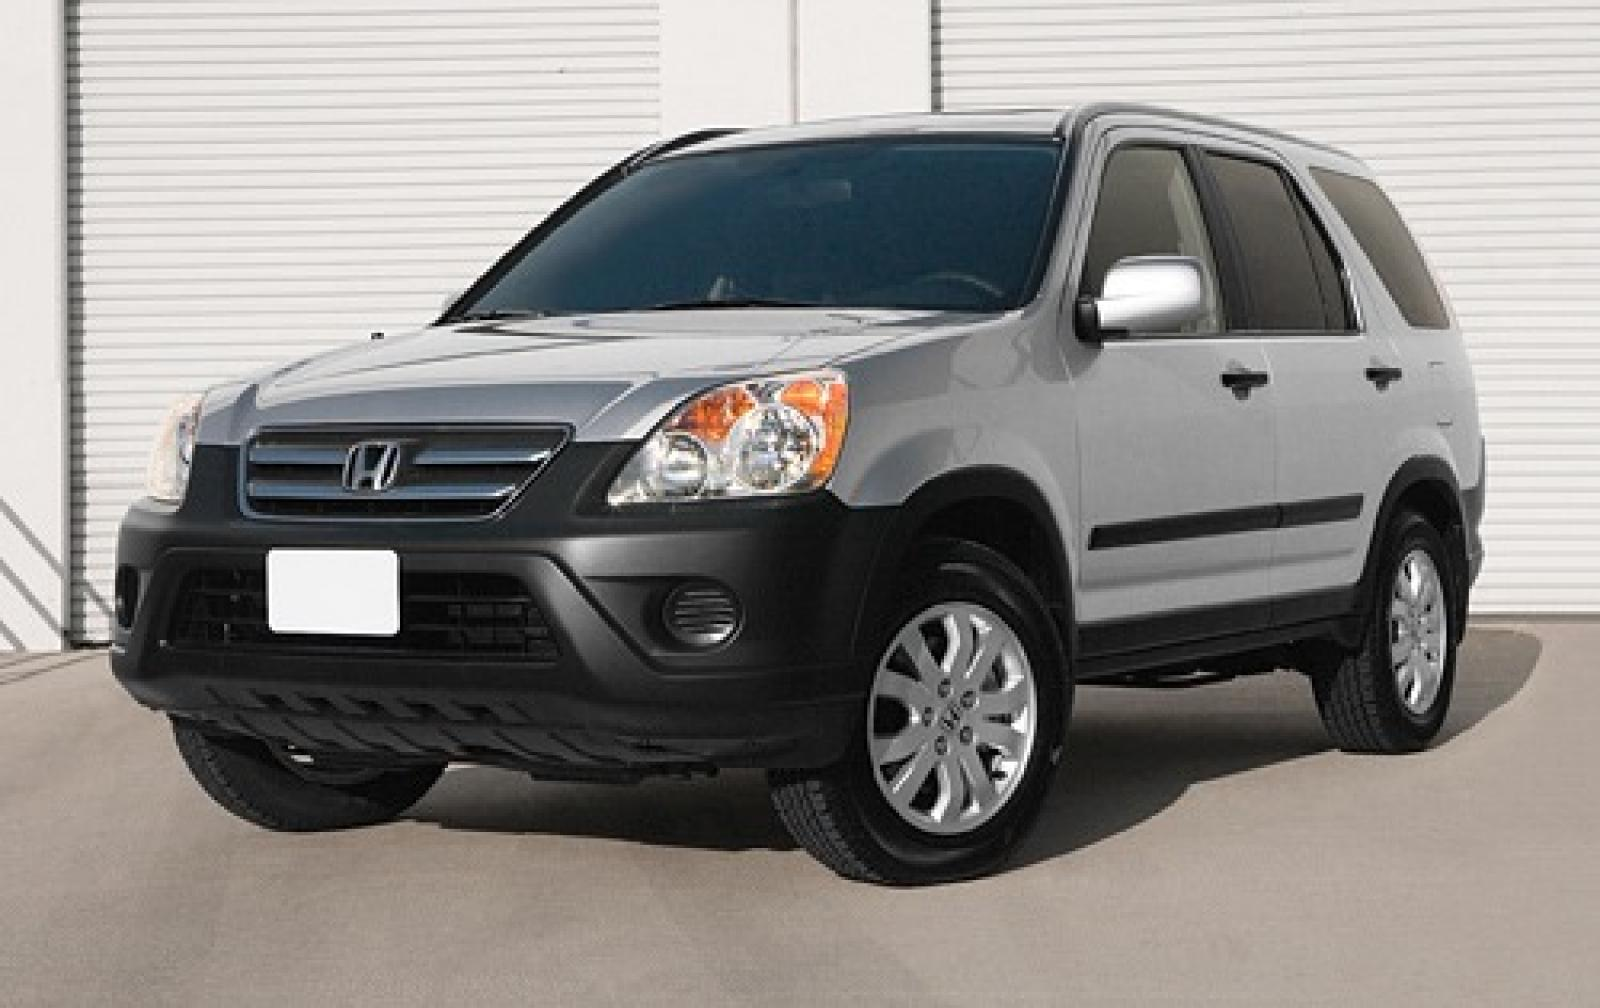 2006 honda cr v information and photos zombiedrive. Black Bedroom Furniture Sets. Home Design Ideas